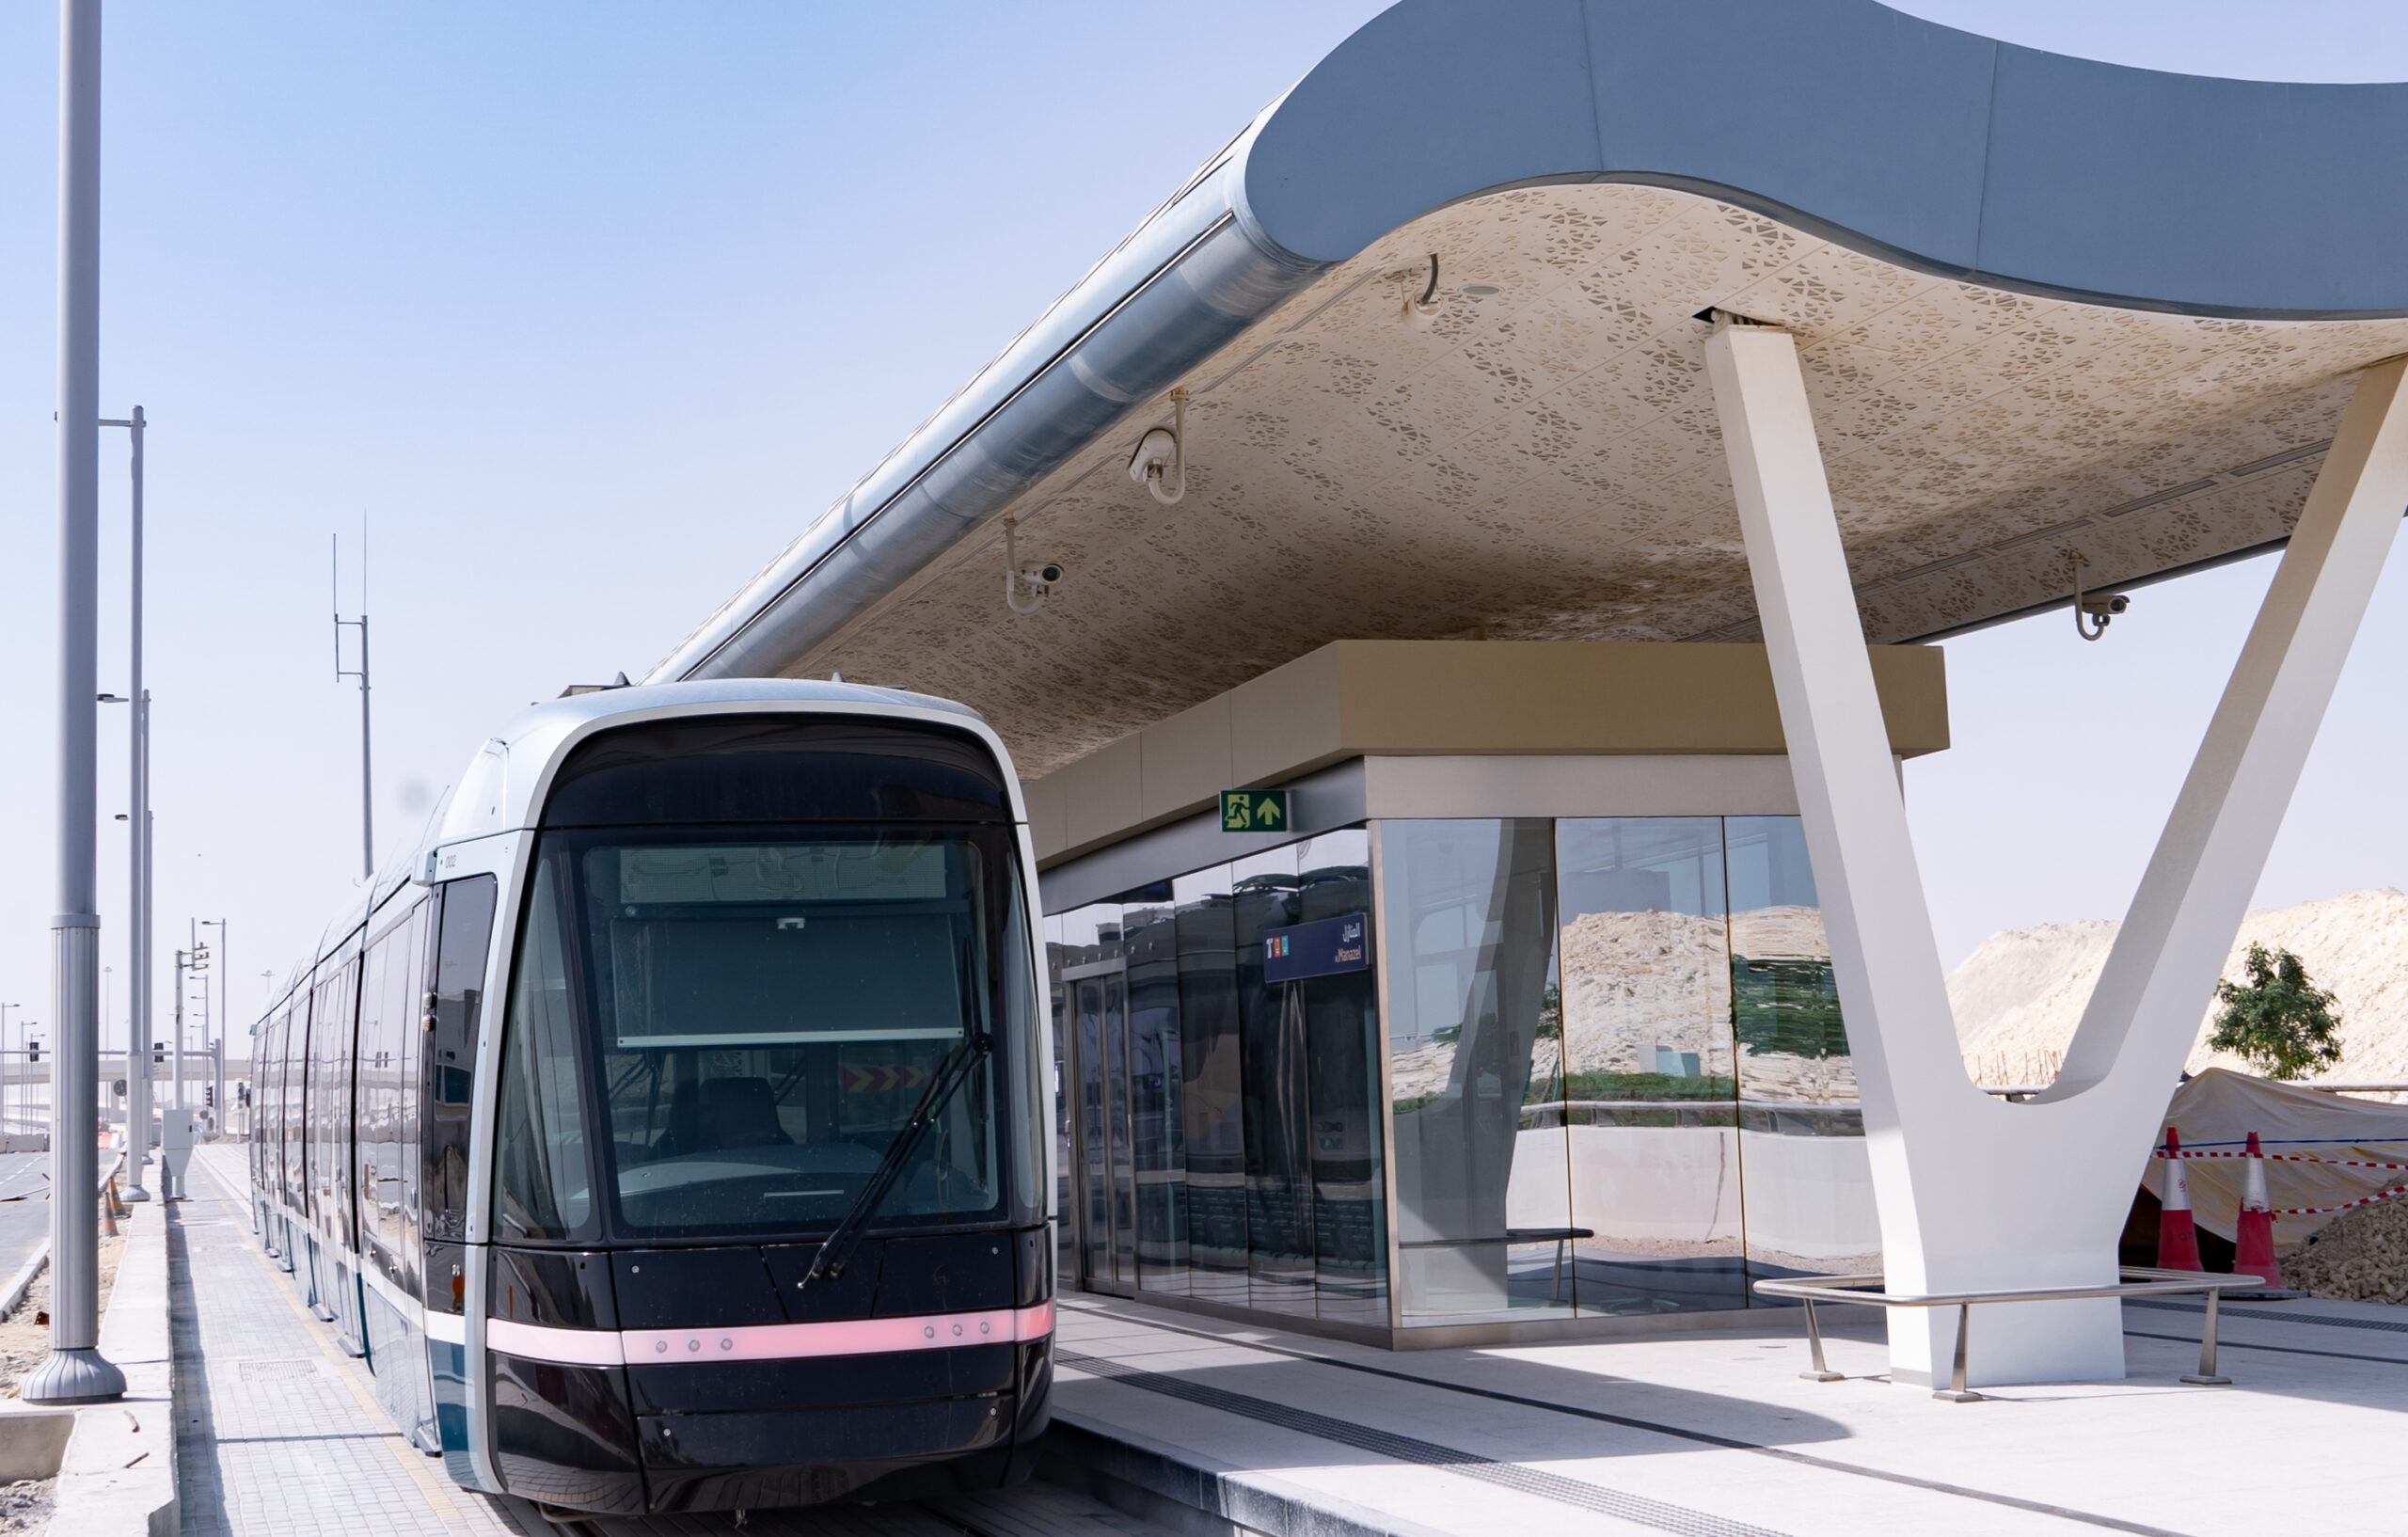 The Alstom Citadis X05 tram for Lusail, Qatar